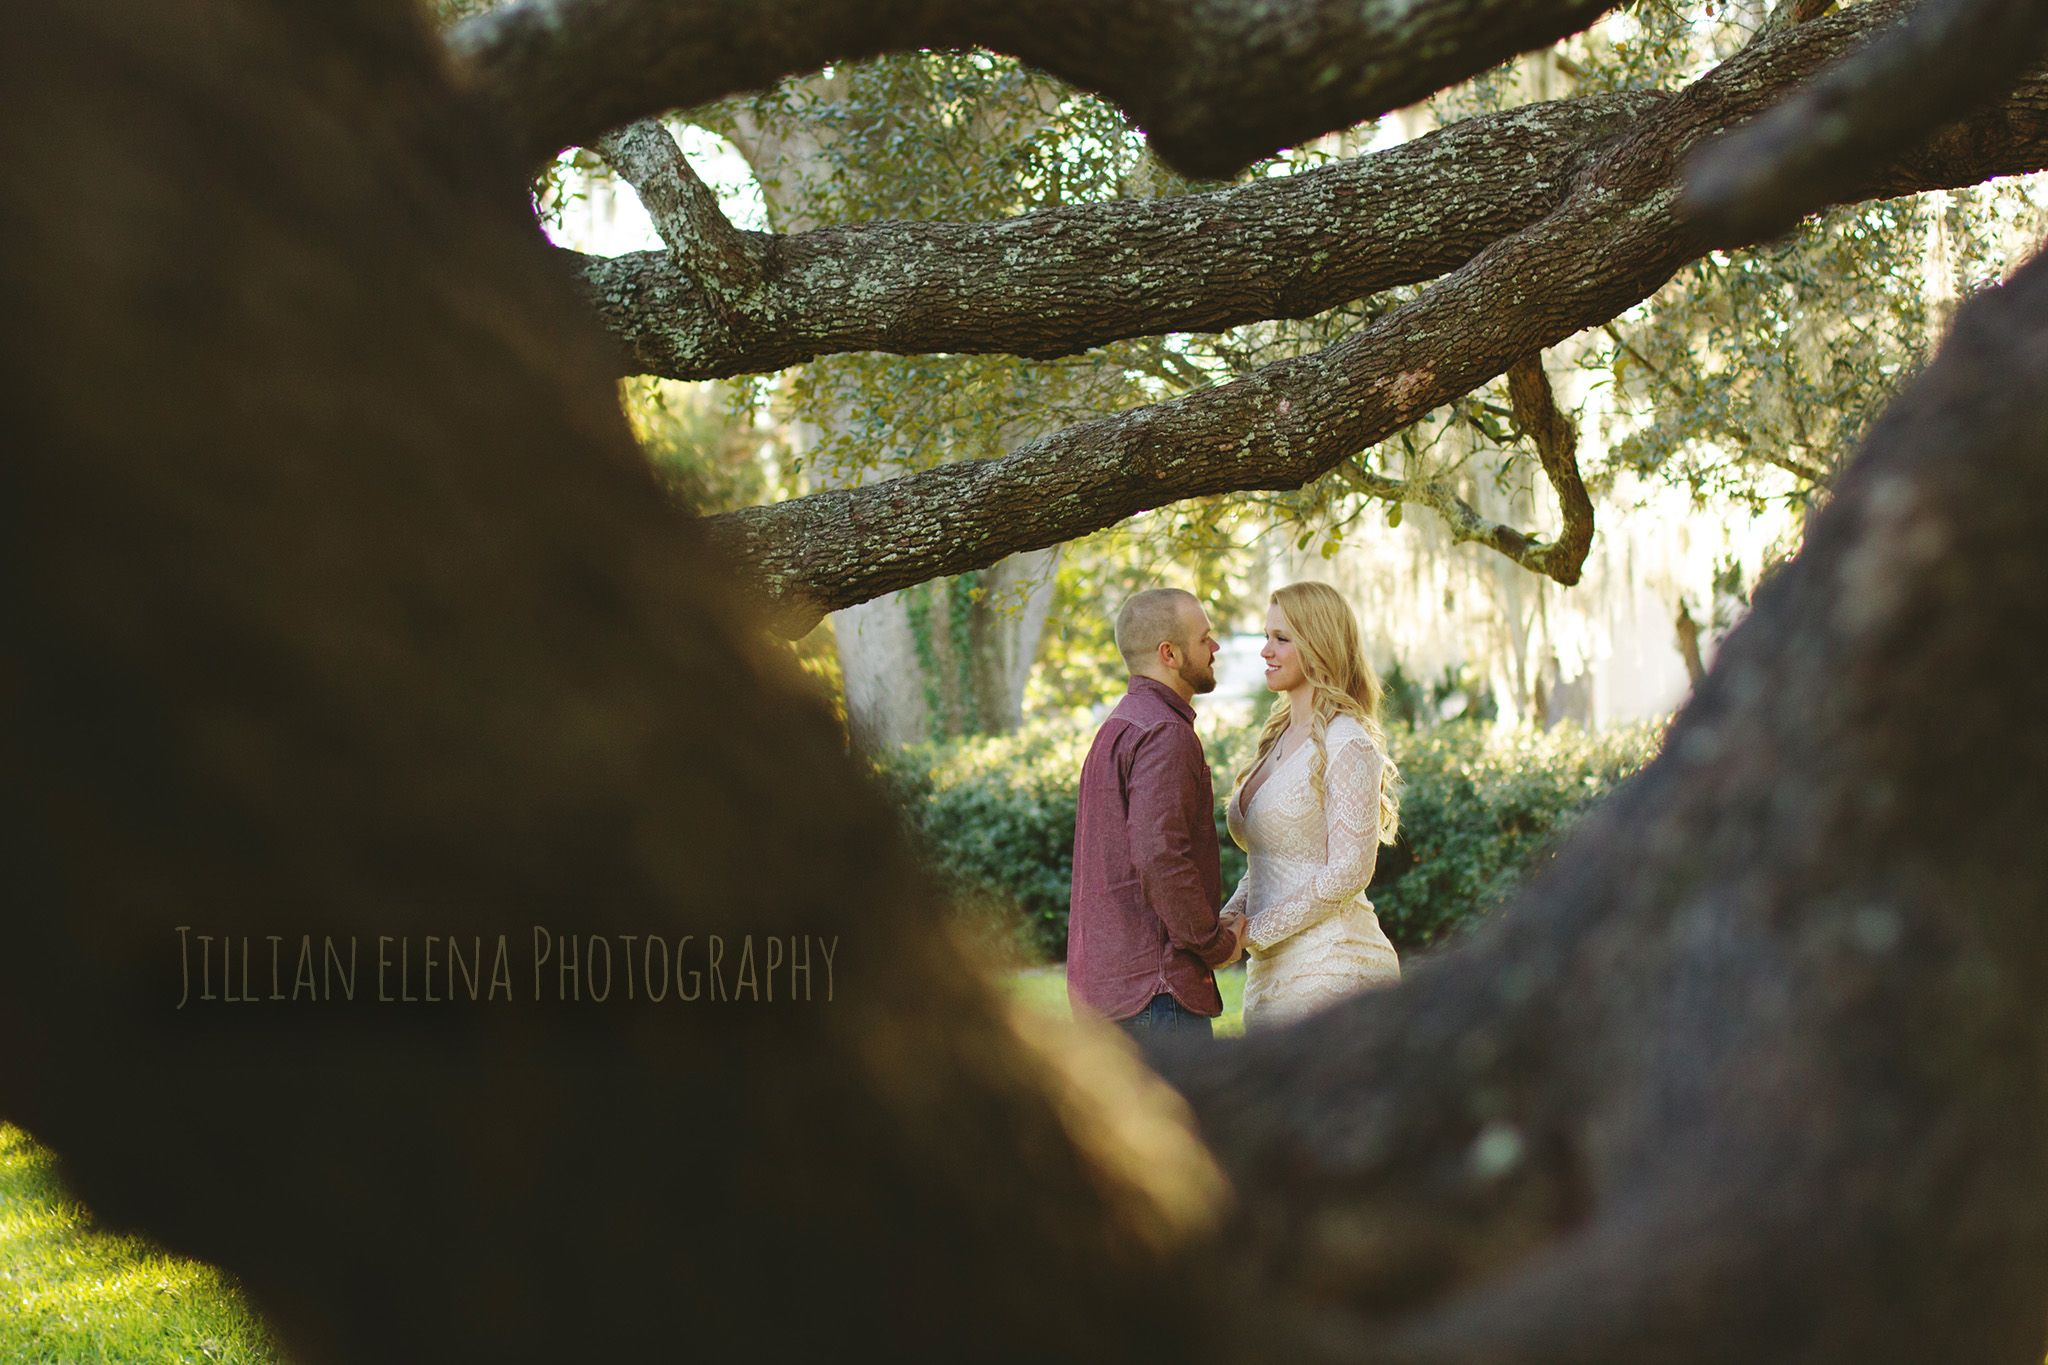 Engagement photo session Gainesville, Florida  #photography #photographer #fl #florida #gainesvillefl #gainesville #blonde #love #couple #engagementphotos #marriage #wedding #tree #nature #outdoors #sunlight